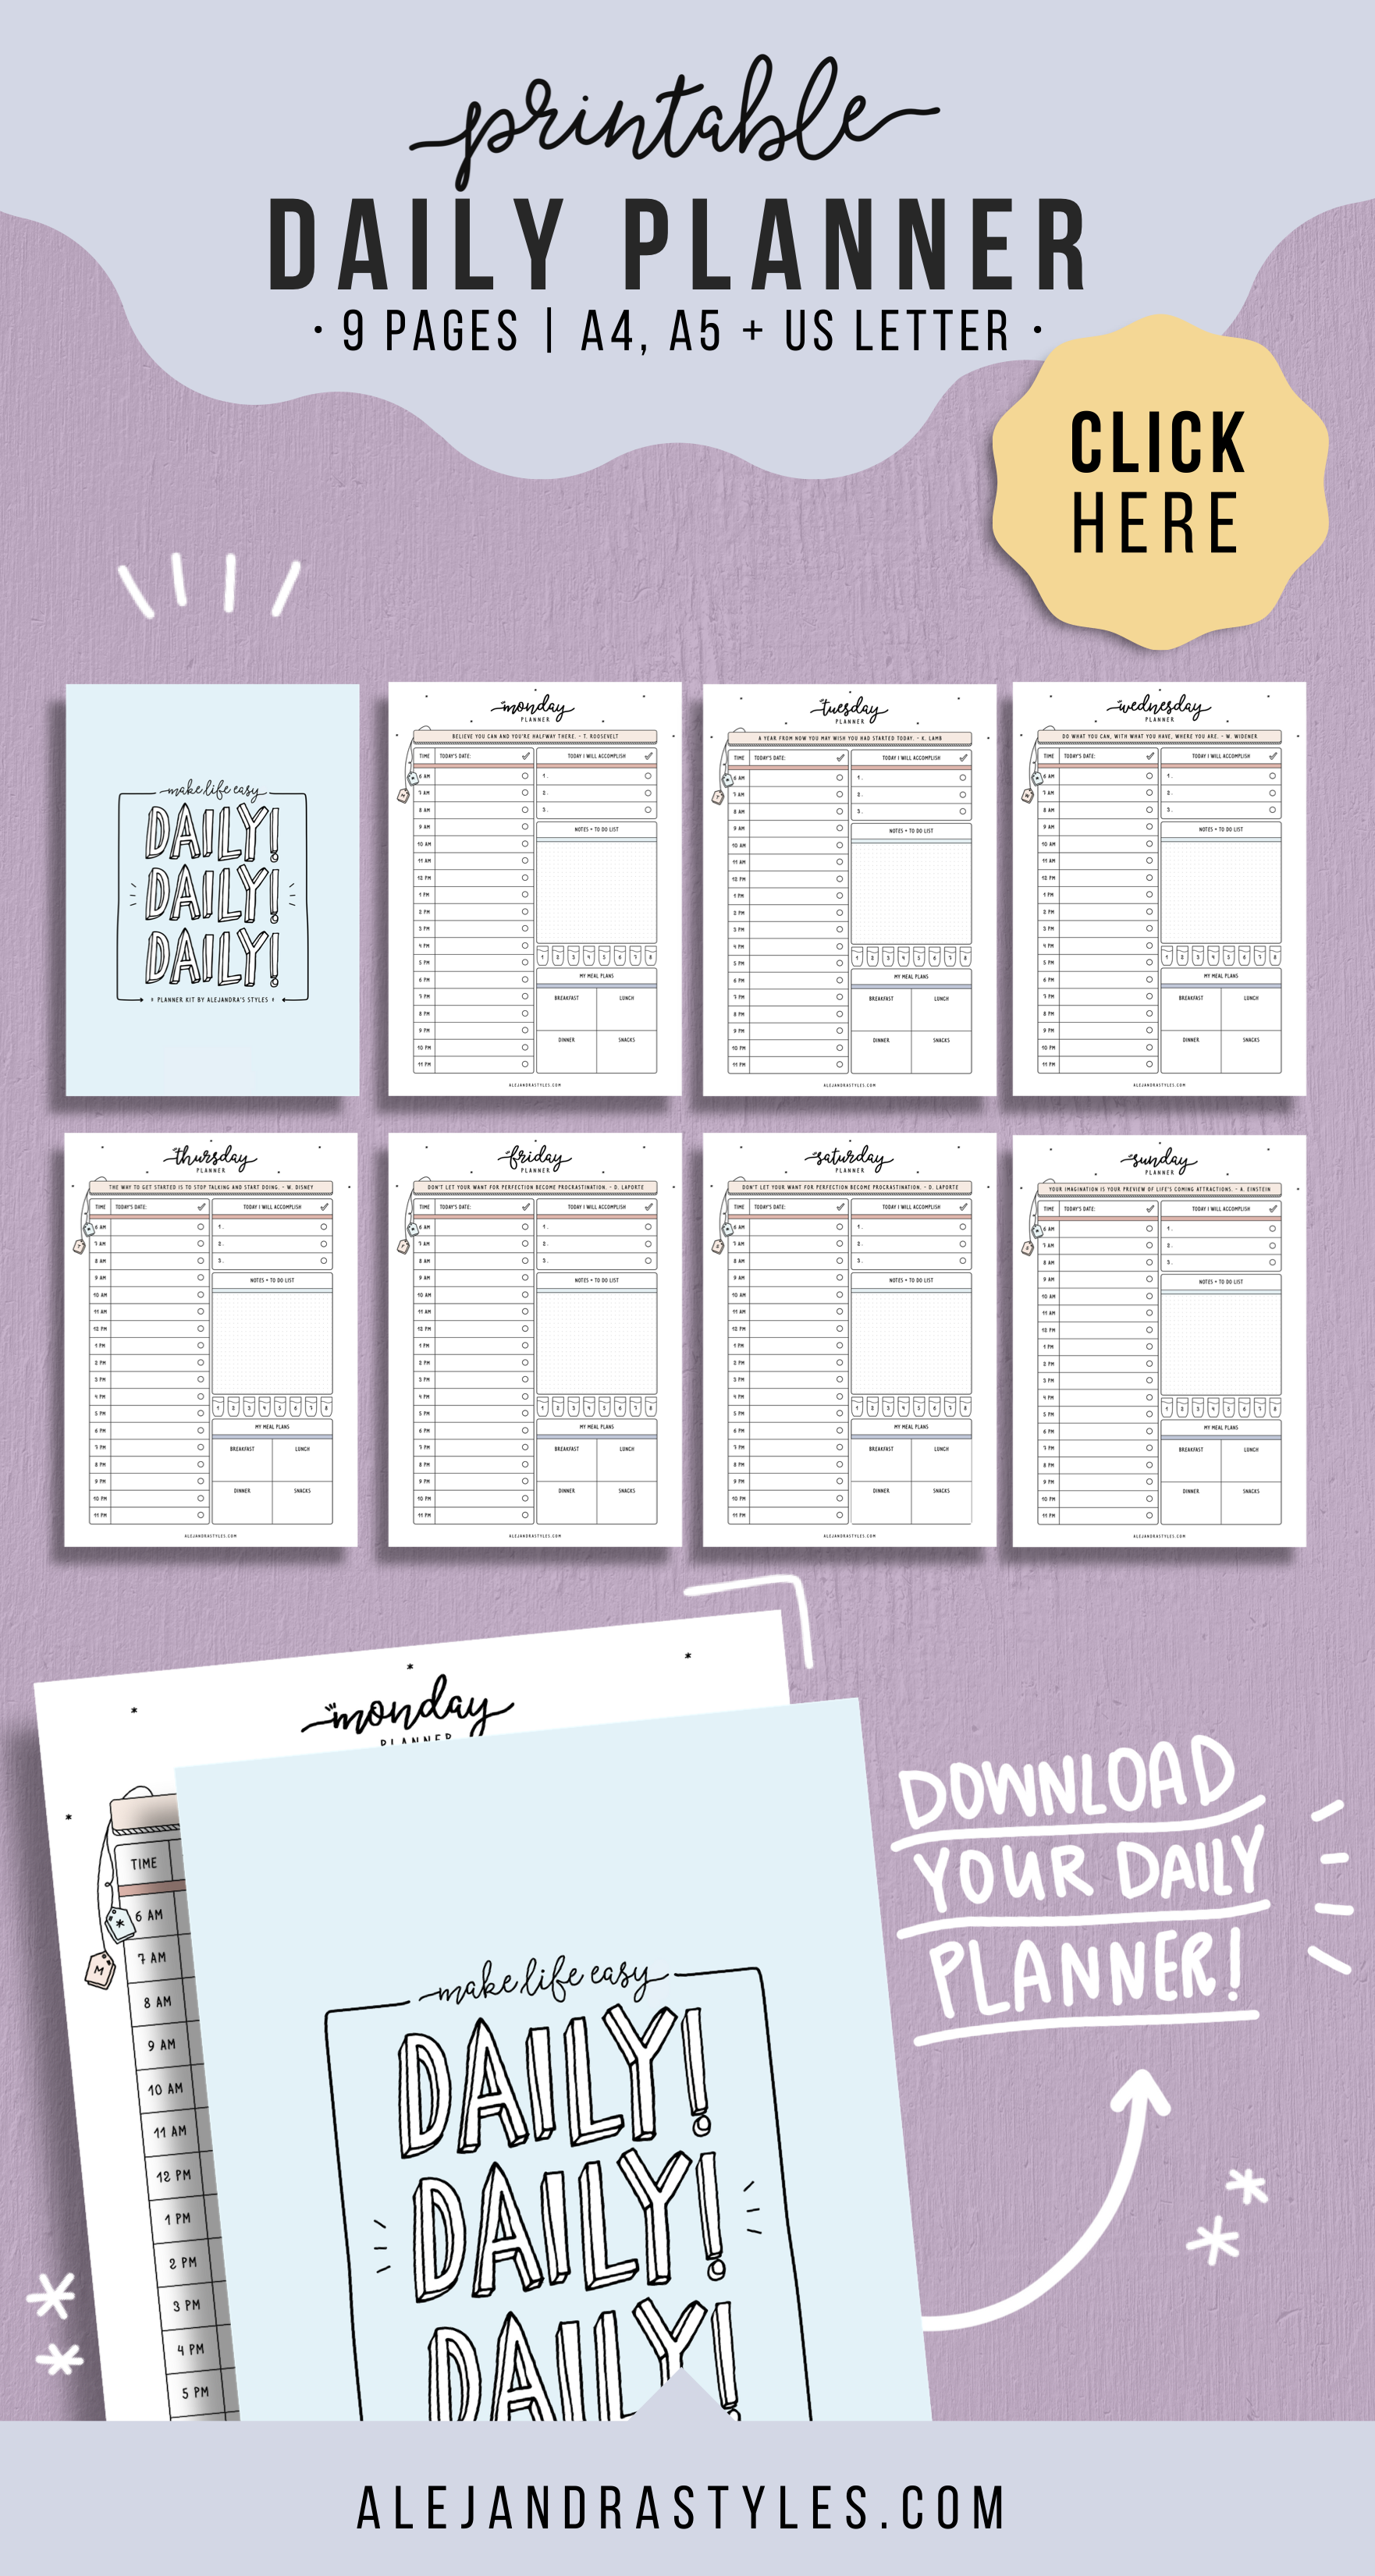 Daily Schedule Printable, 6AM11PM Hourly Daily Planner